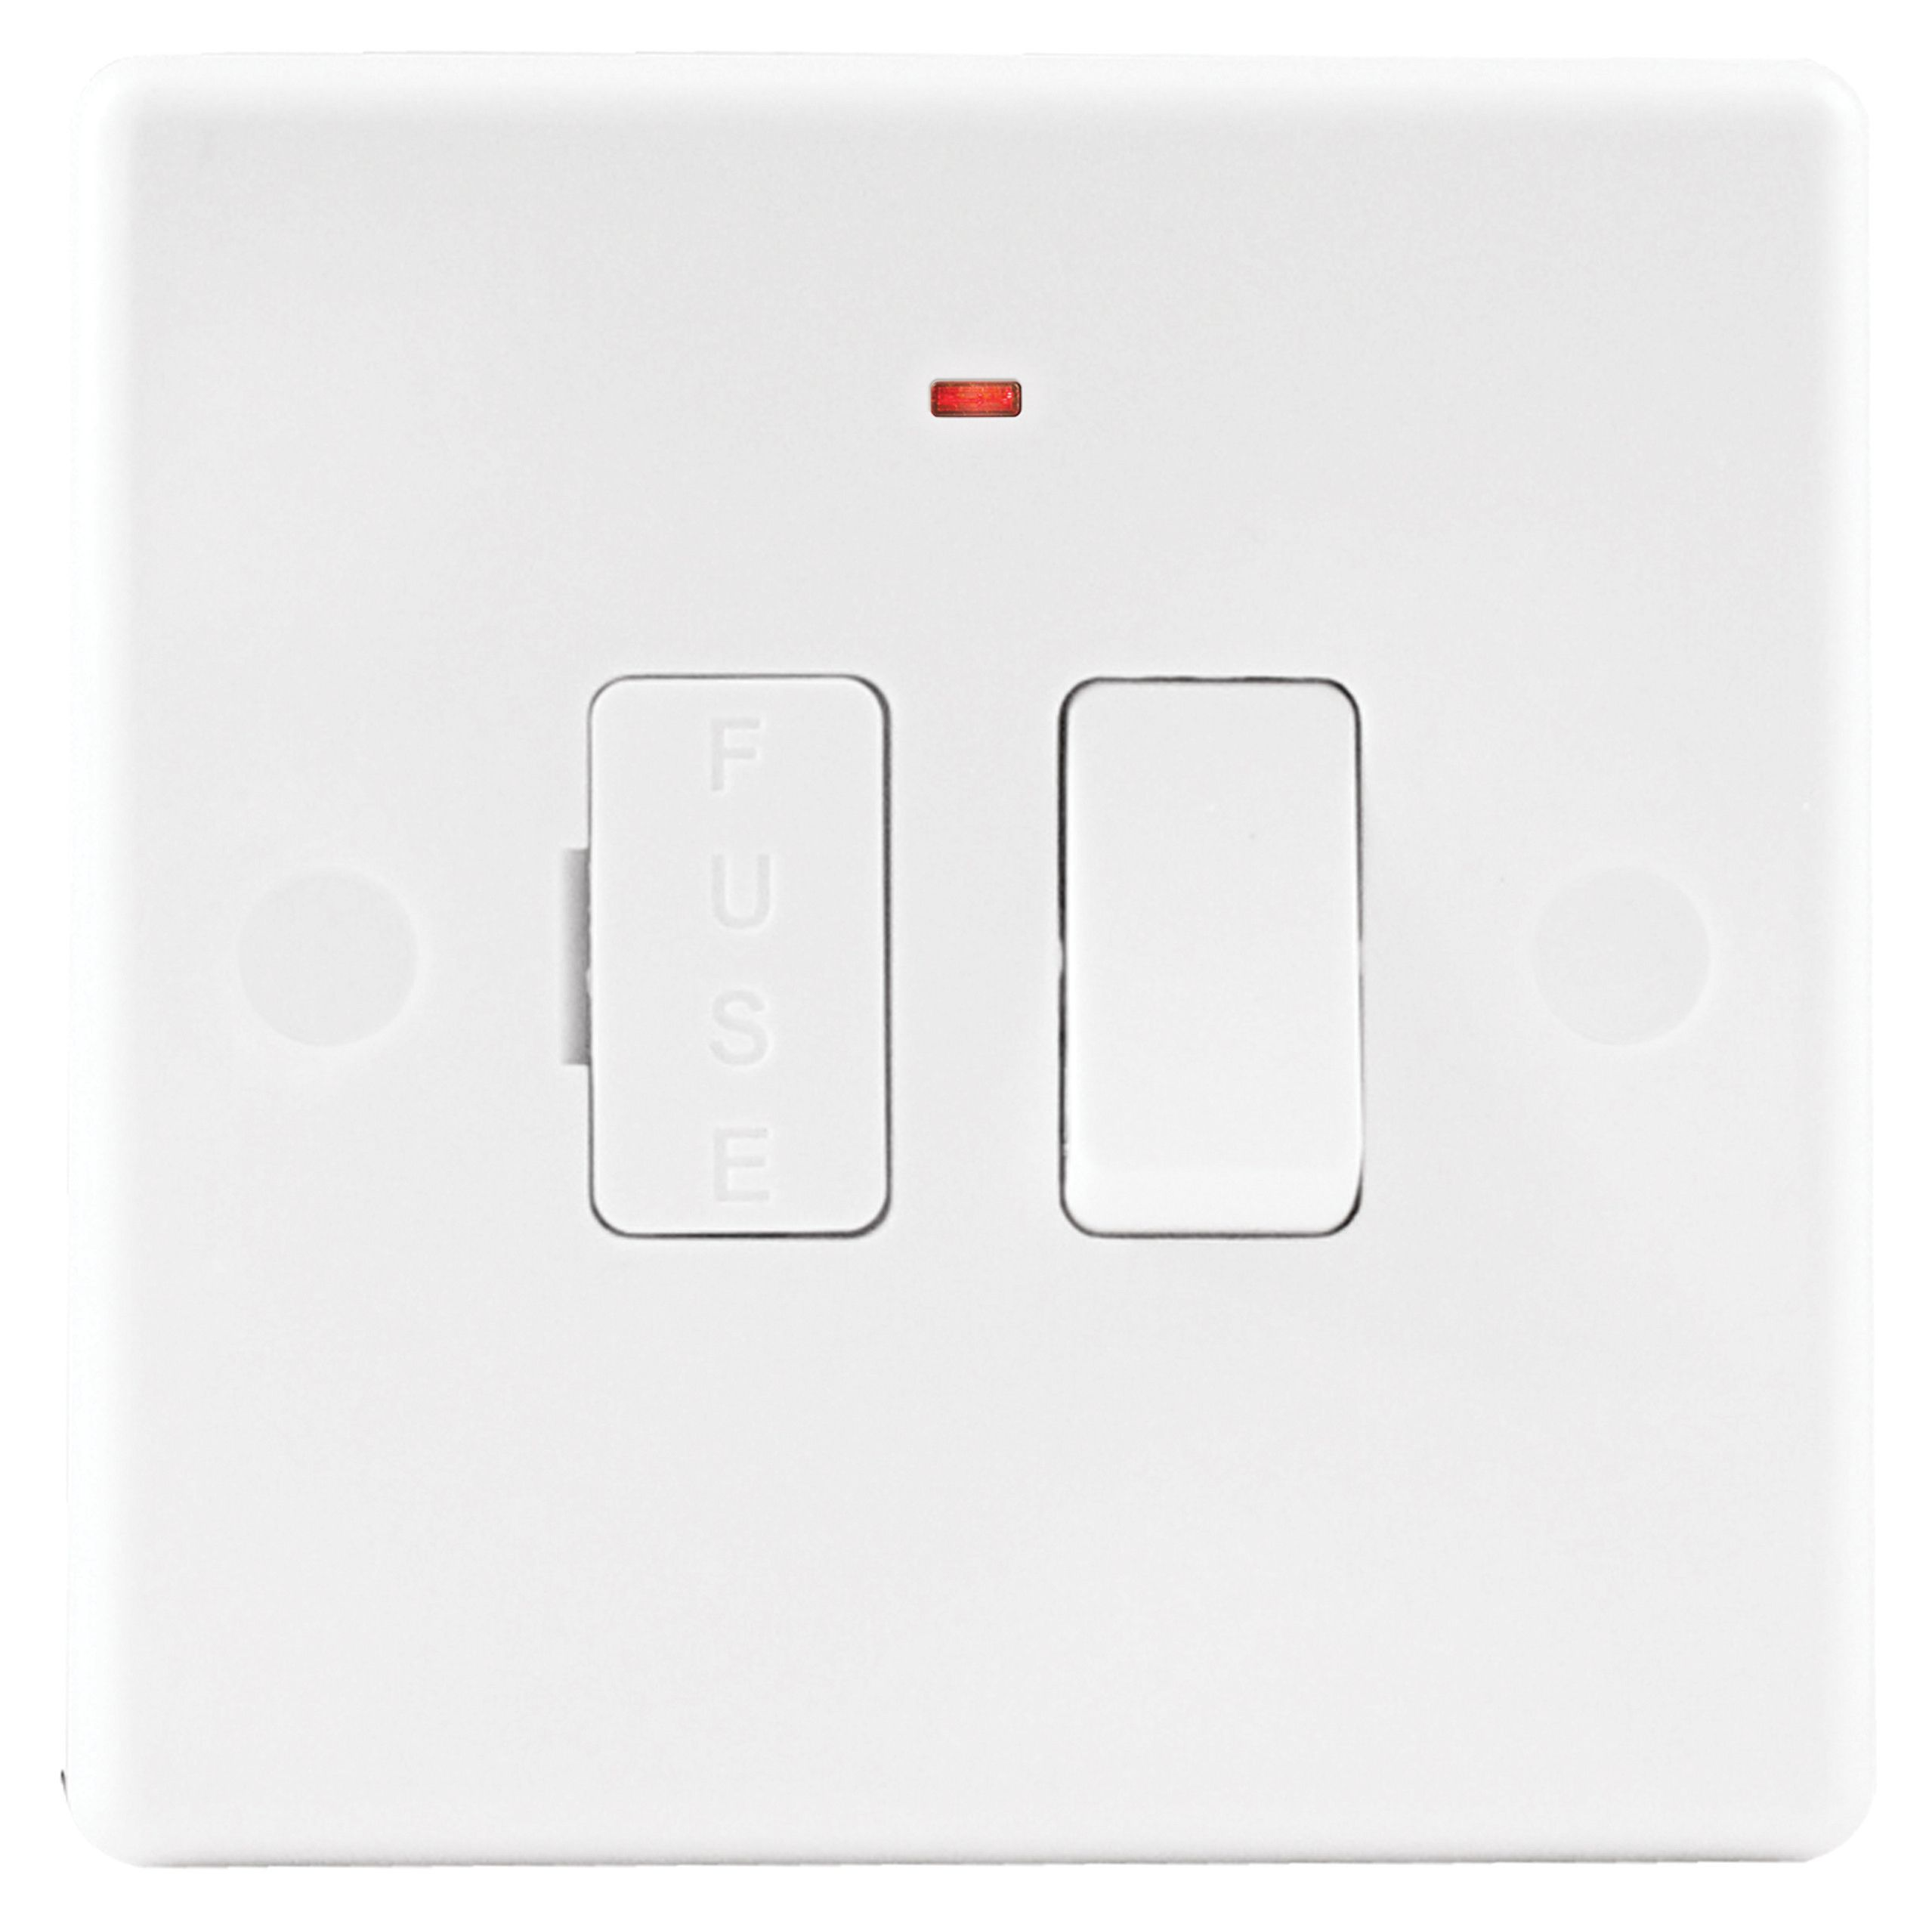 hight resolution of wickes garage fuse box wire management wiring diagram wickes garage fuse box